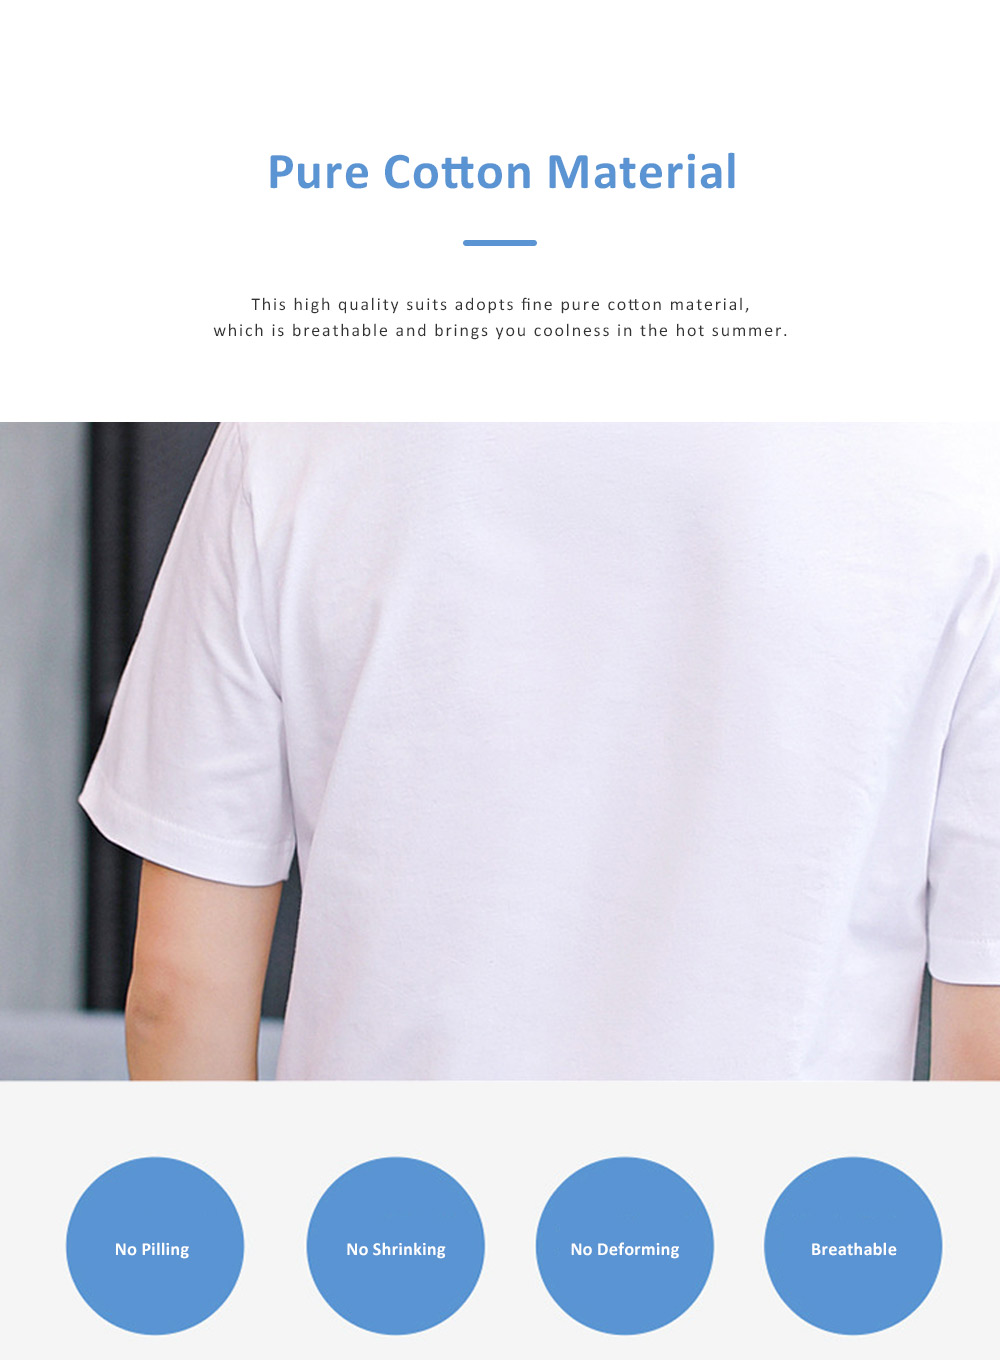 2019 New Style Casual Men's Short Sleeve T-shirt with Round Collar, Fashionable and Durable Cotton Material Top 1